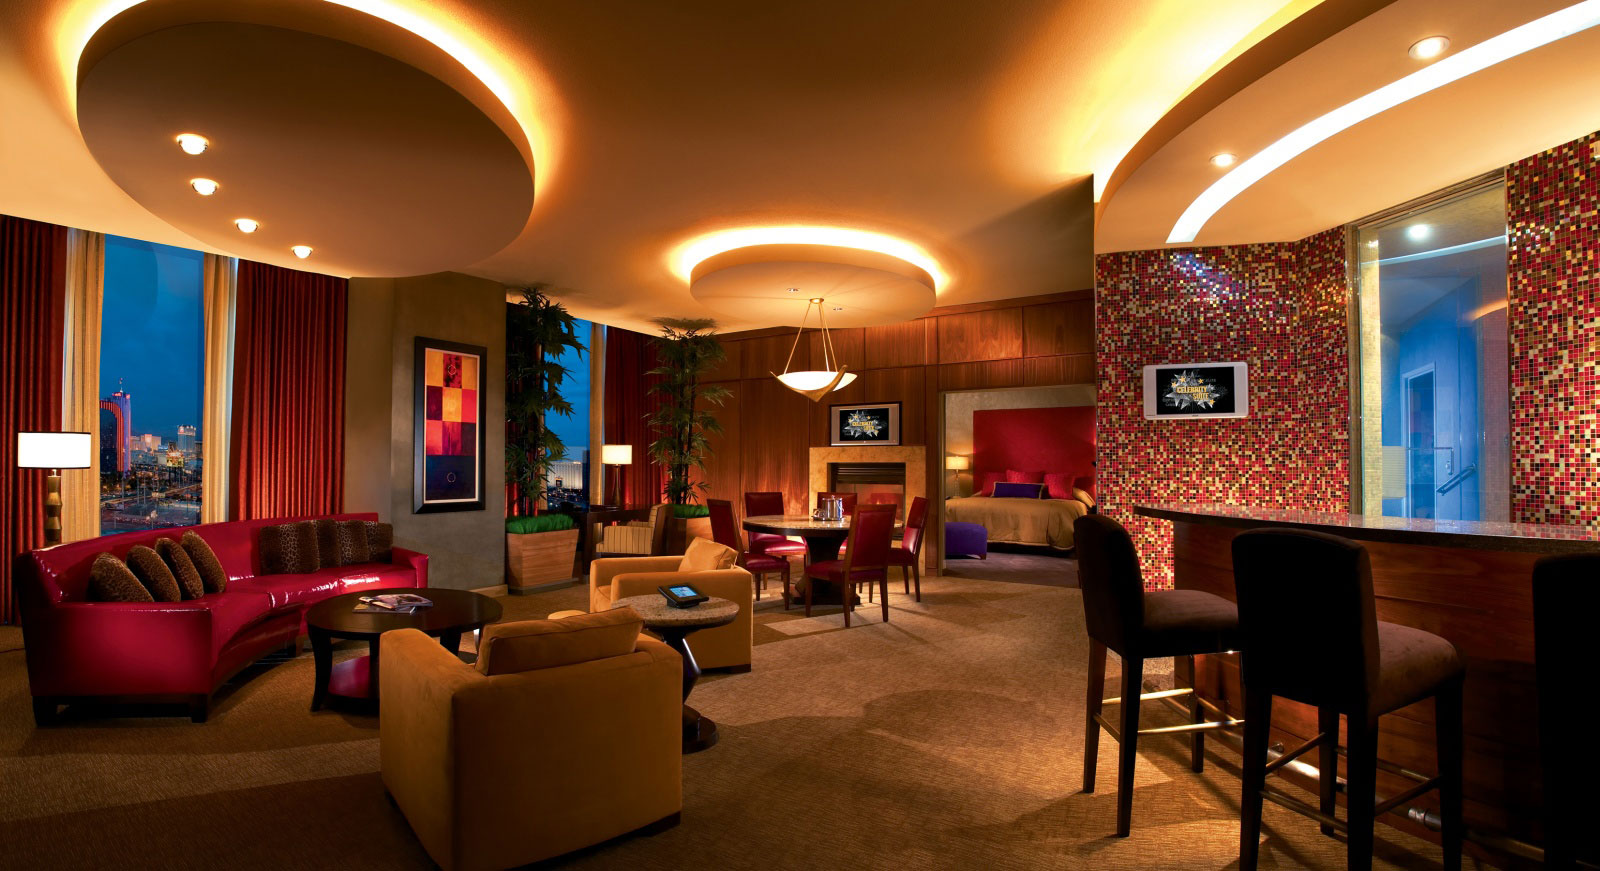 Magnificent Palms Place Hotel Amp Spa In Las Vegas Homedoo Com